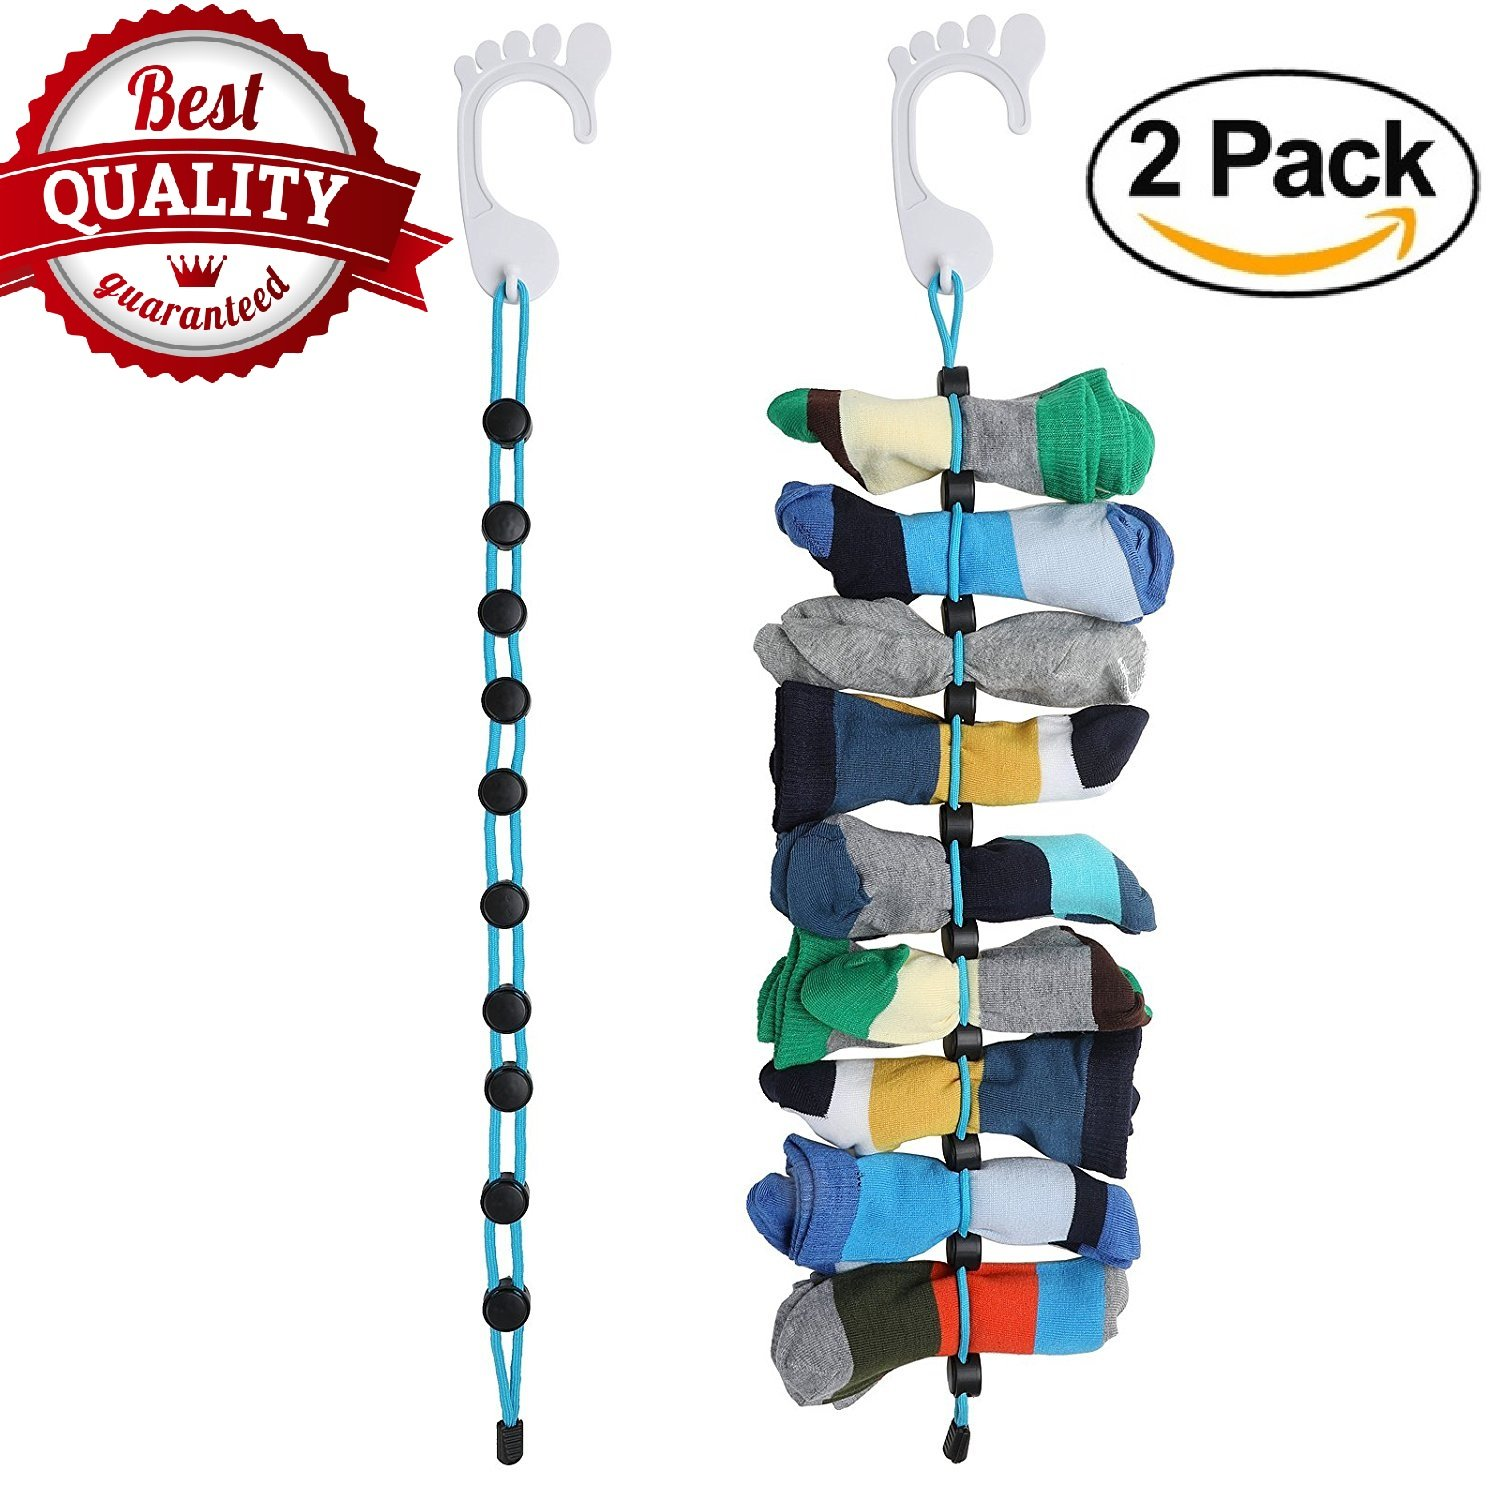 Amazon.com: Sock Organizer, Easy Clips & Locks Paired Socks without Ties, Bags, Dock or Dividers for Laundry (Black + White) (2 Pcs): Home & Kitchen